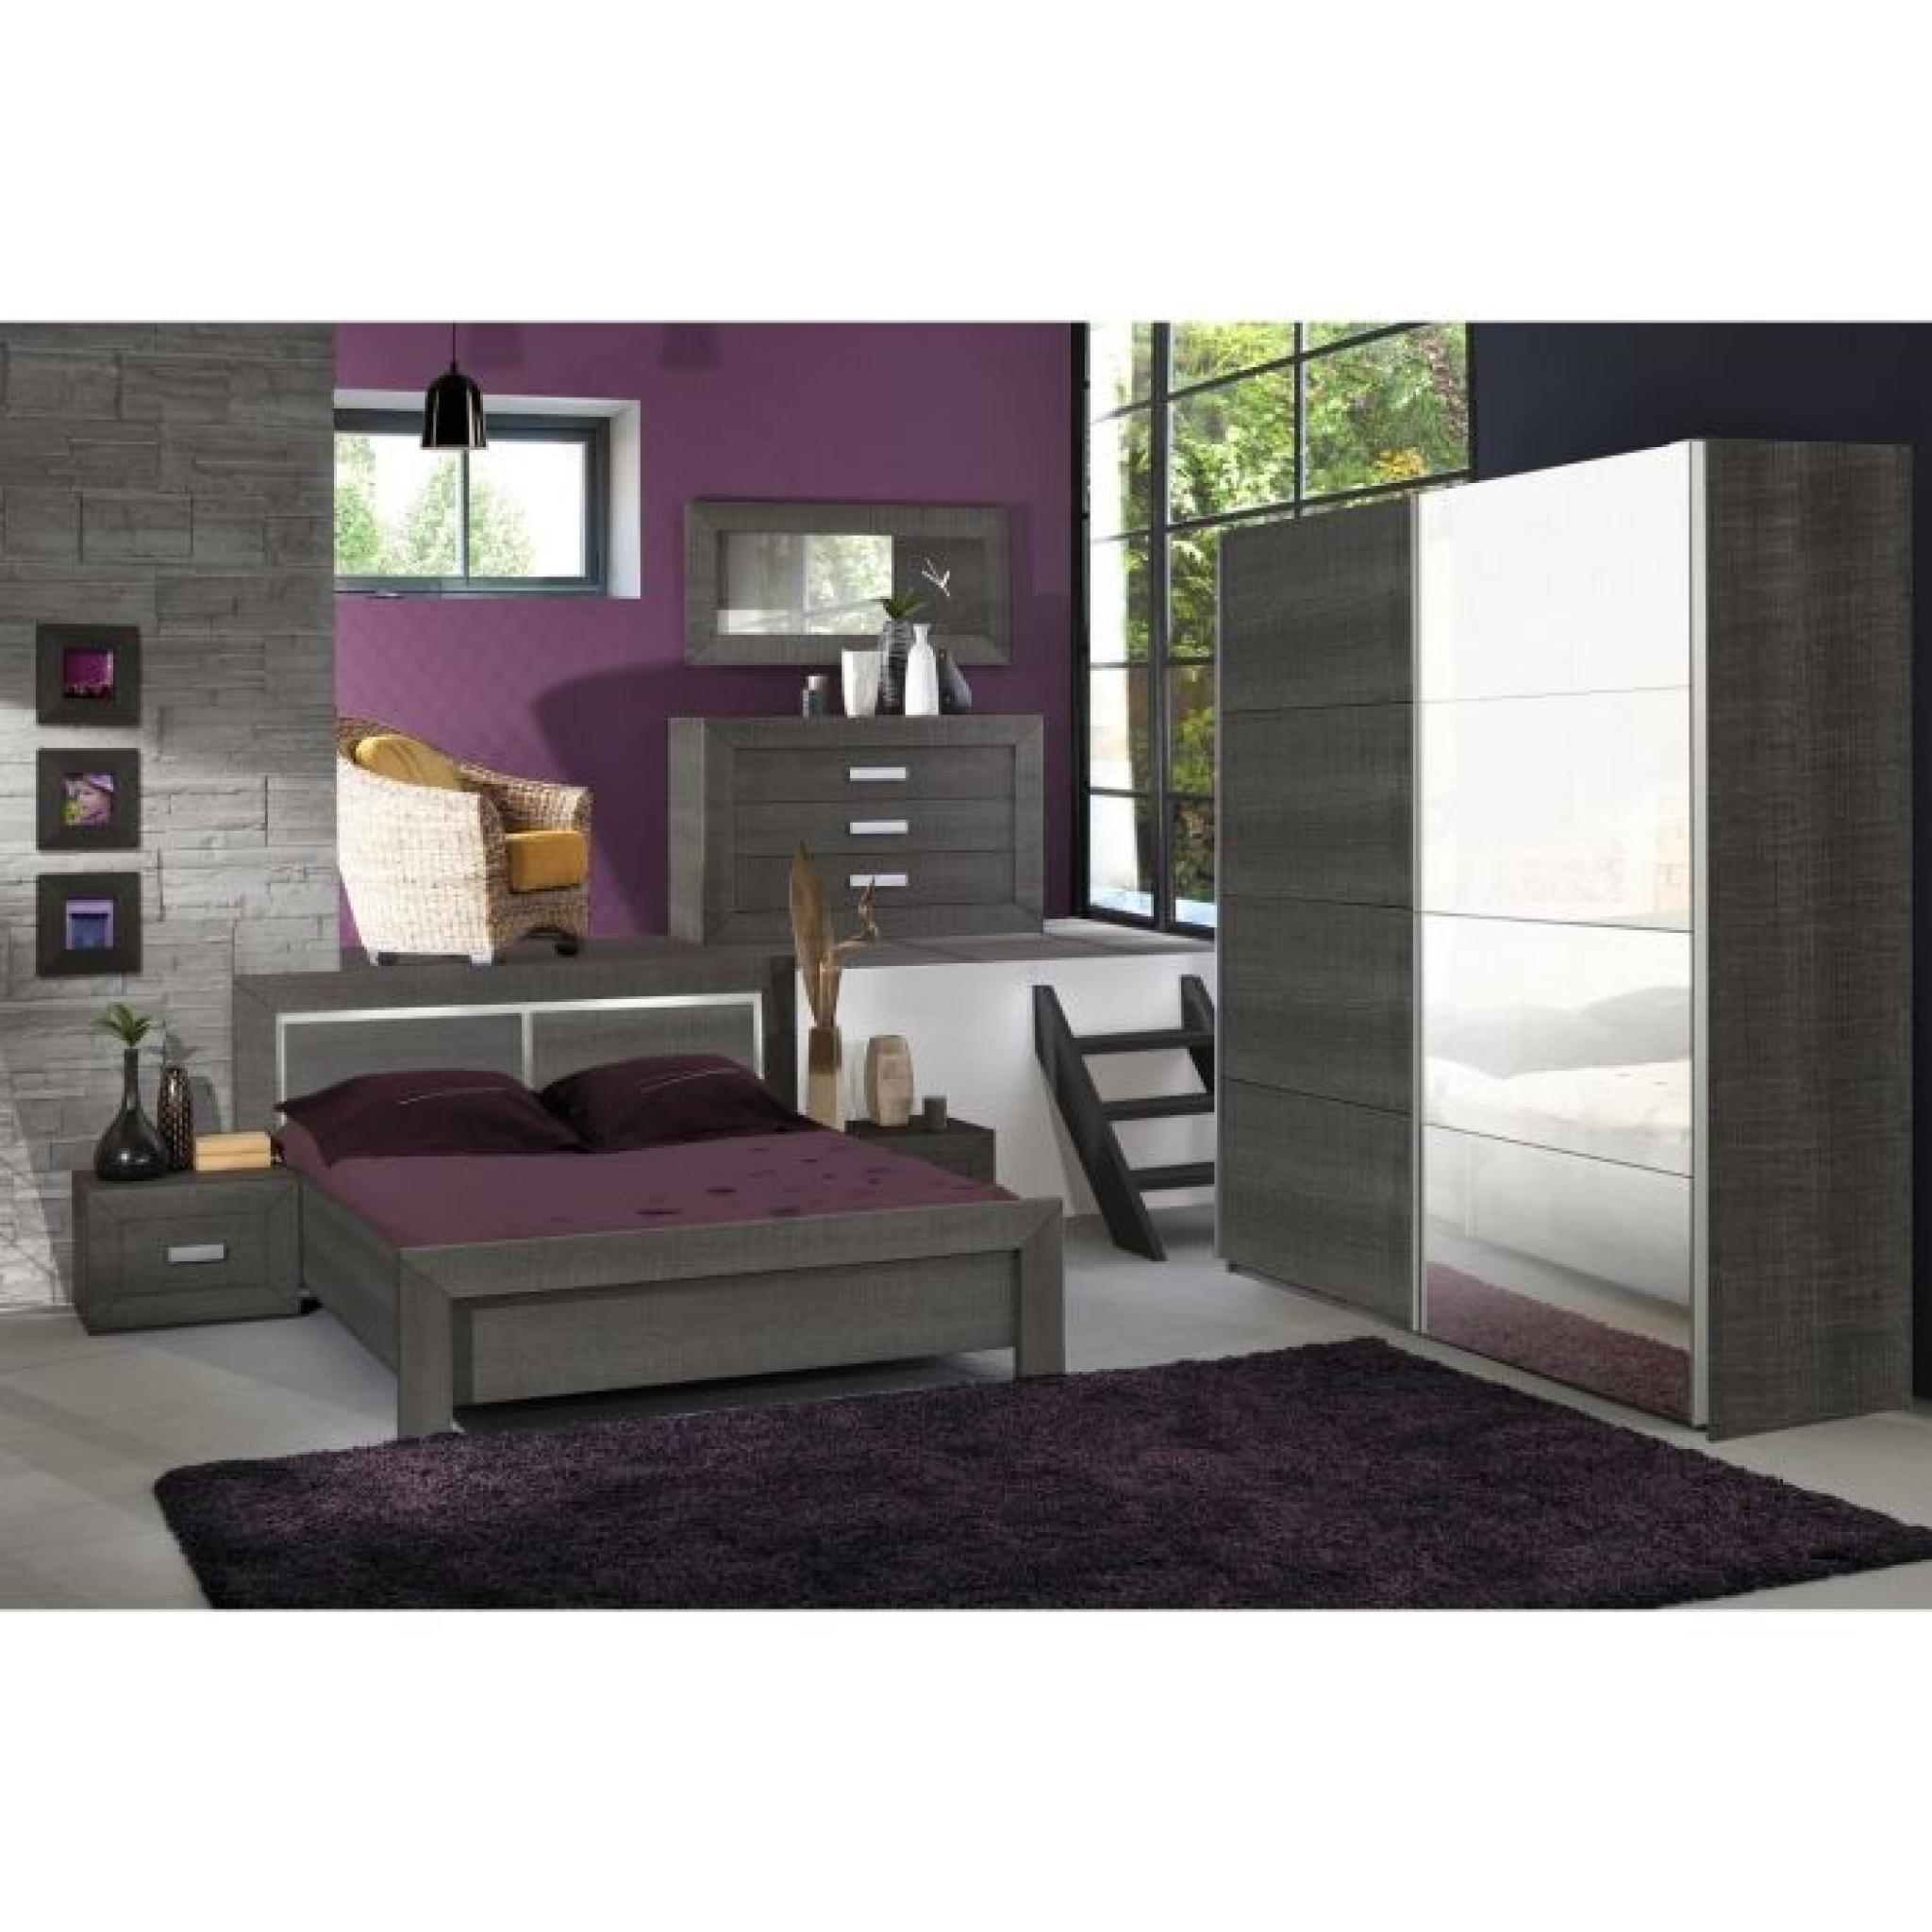 avignon chambre compl te adulte 160cm achat vente chambre complete pas cher couleur et. Black Bedroom Furniture Sets. Home Design Ideas